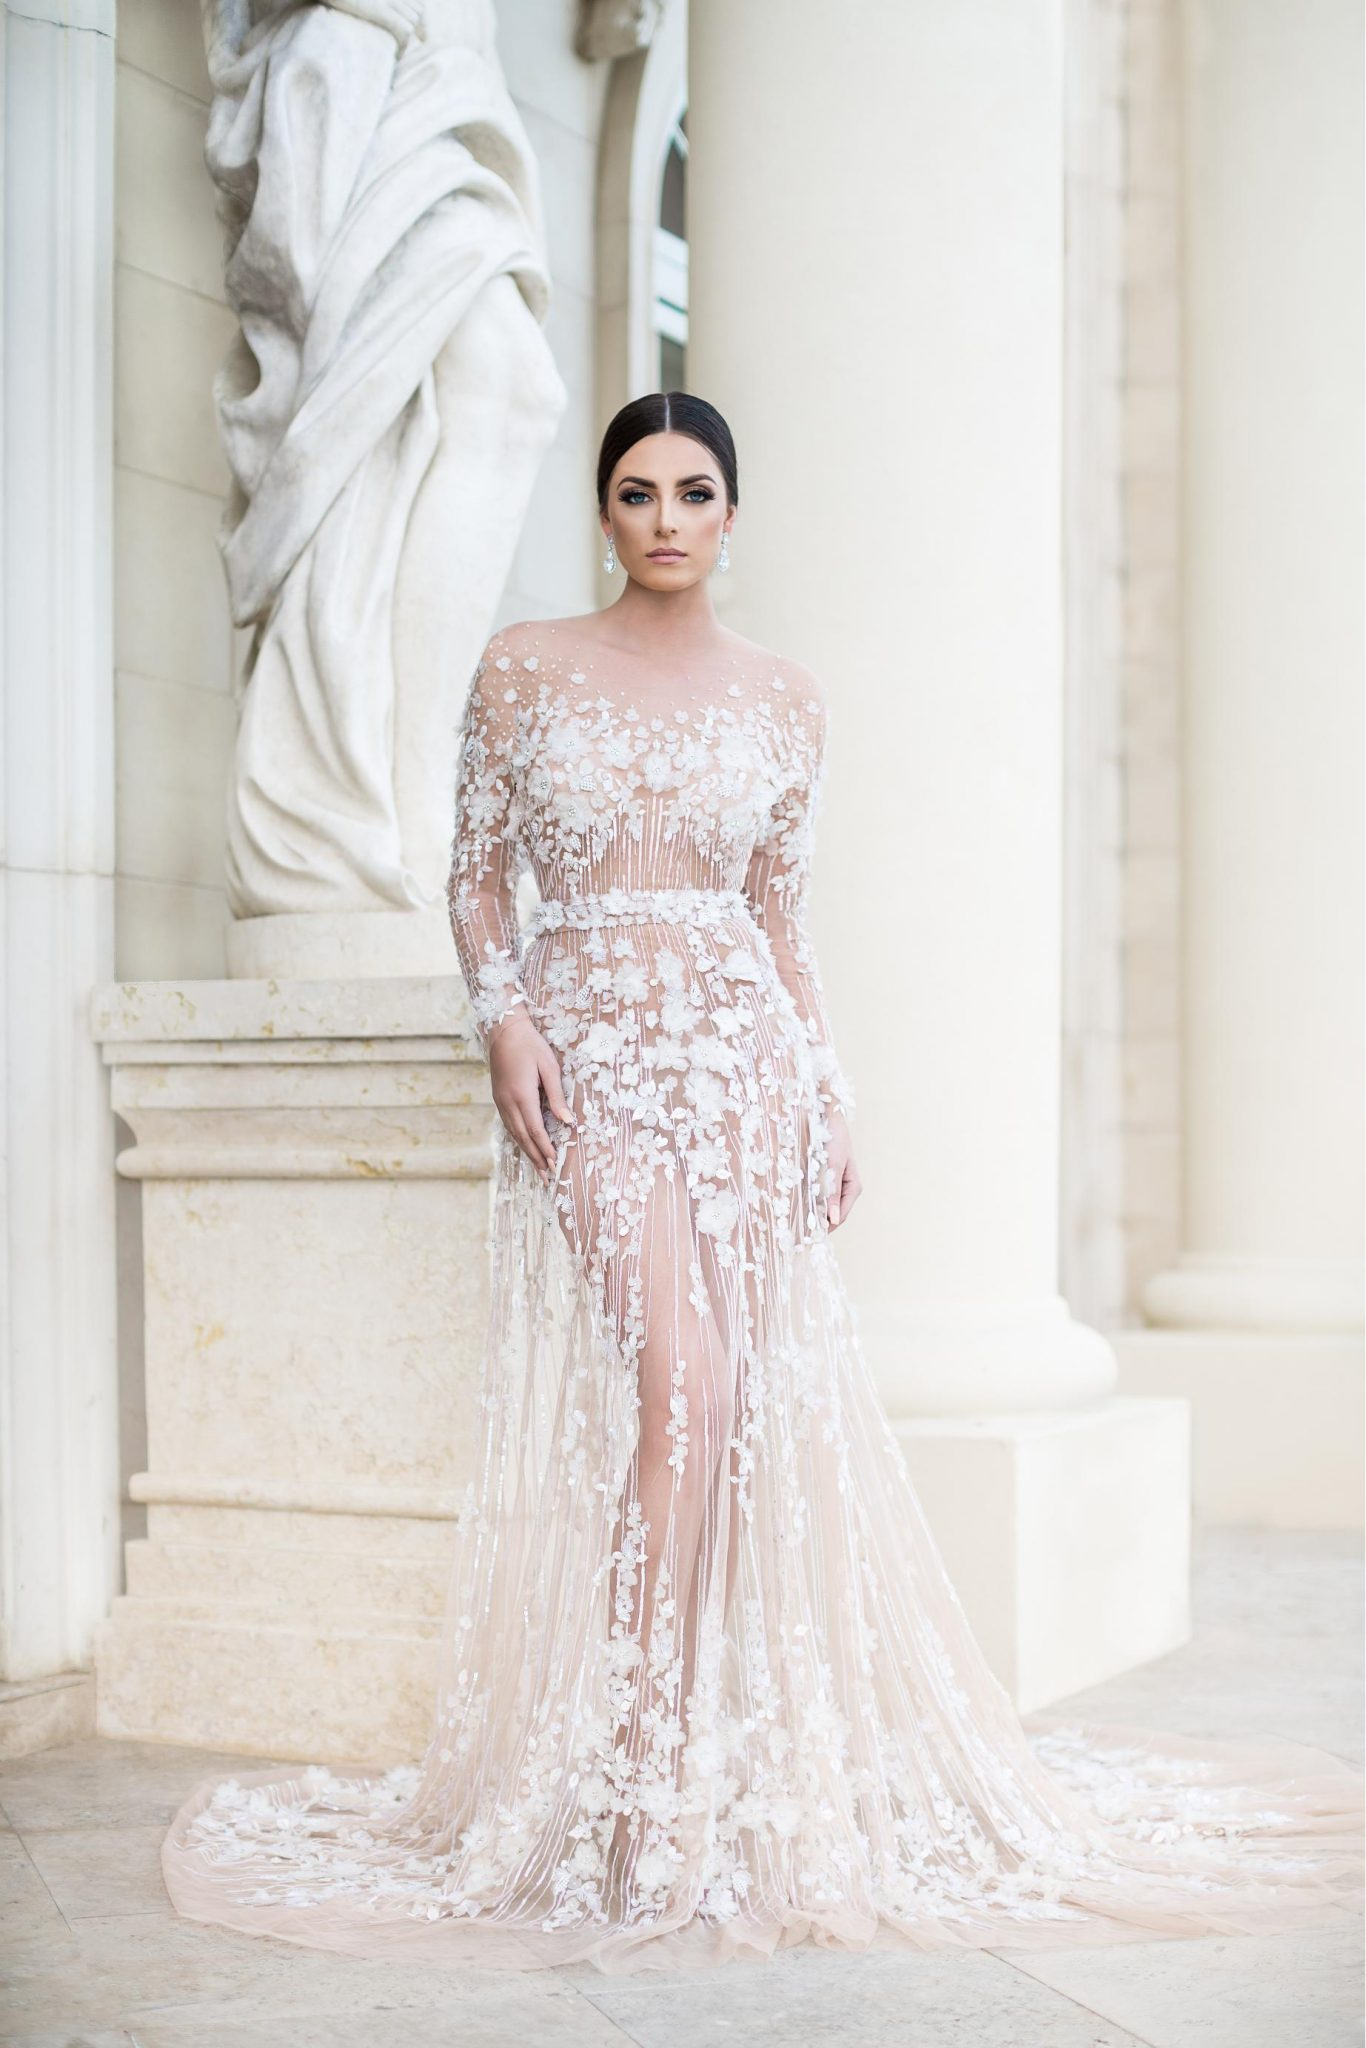 PETAL 1 - Couture Wedding Dresses